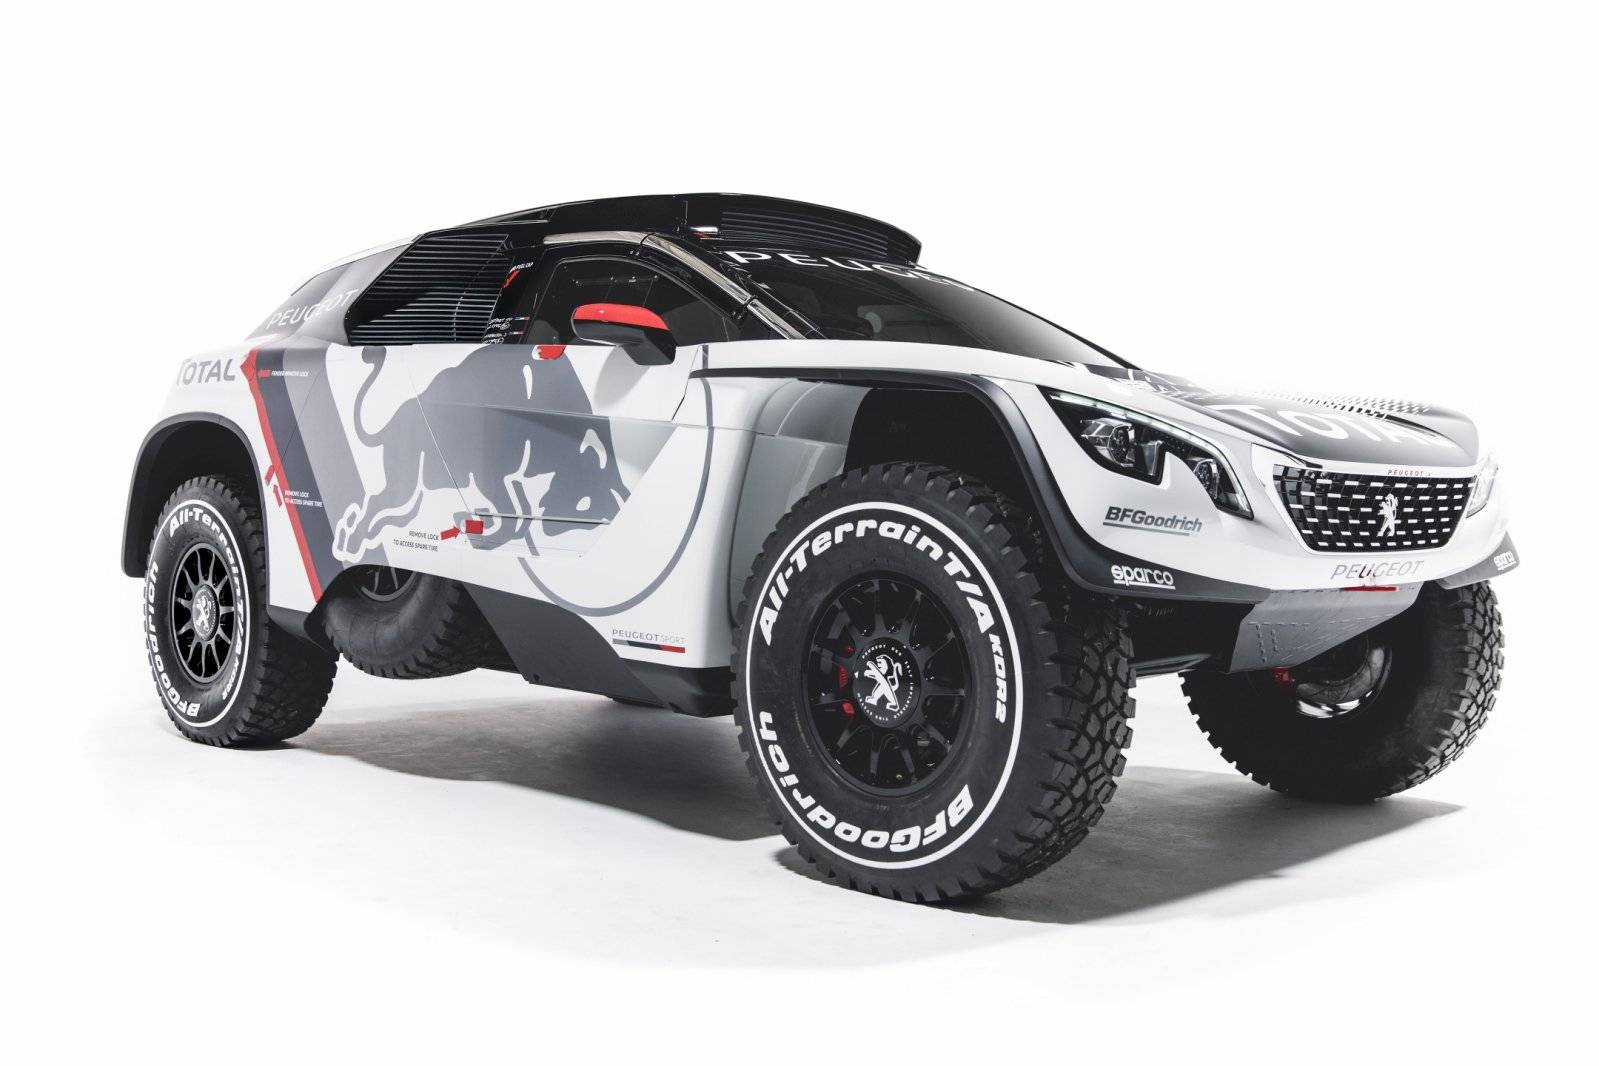 peugeot 3008 dkr is klaar voor dakar 2017 autonieuws. Black Bedroom Furniture Sets. Home Design Ideas